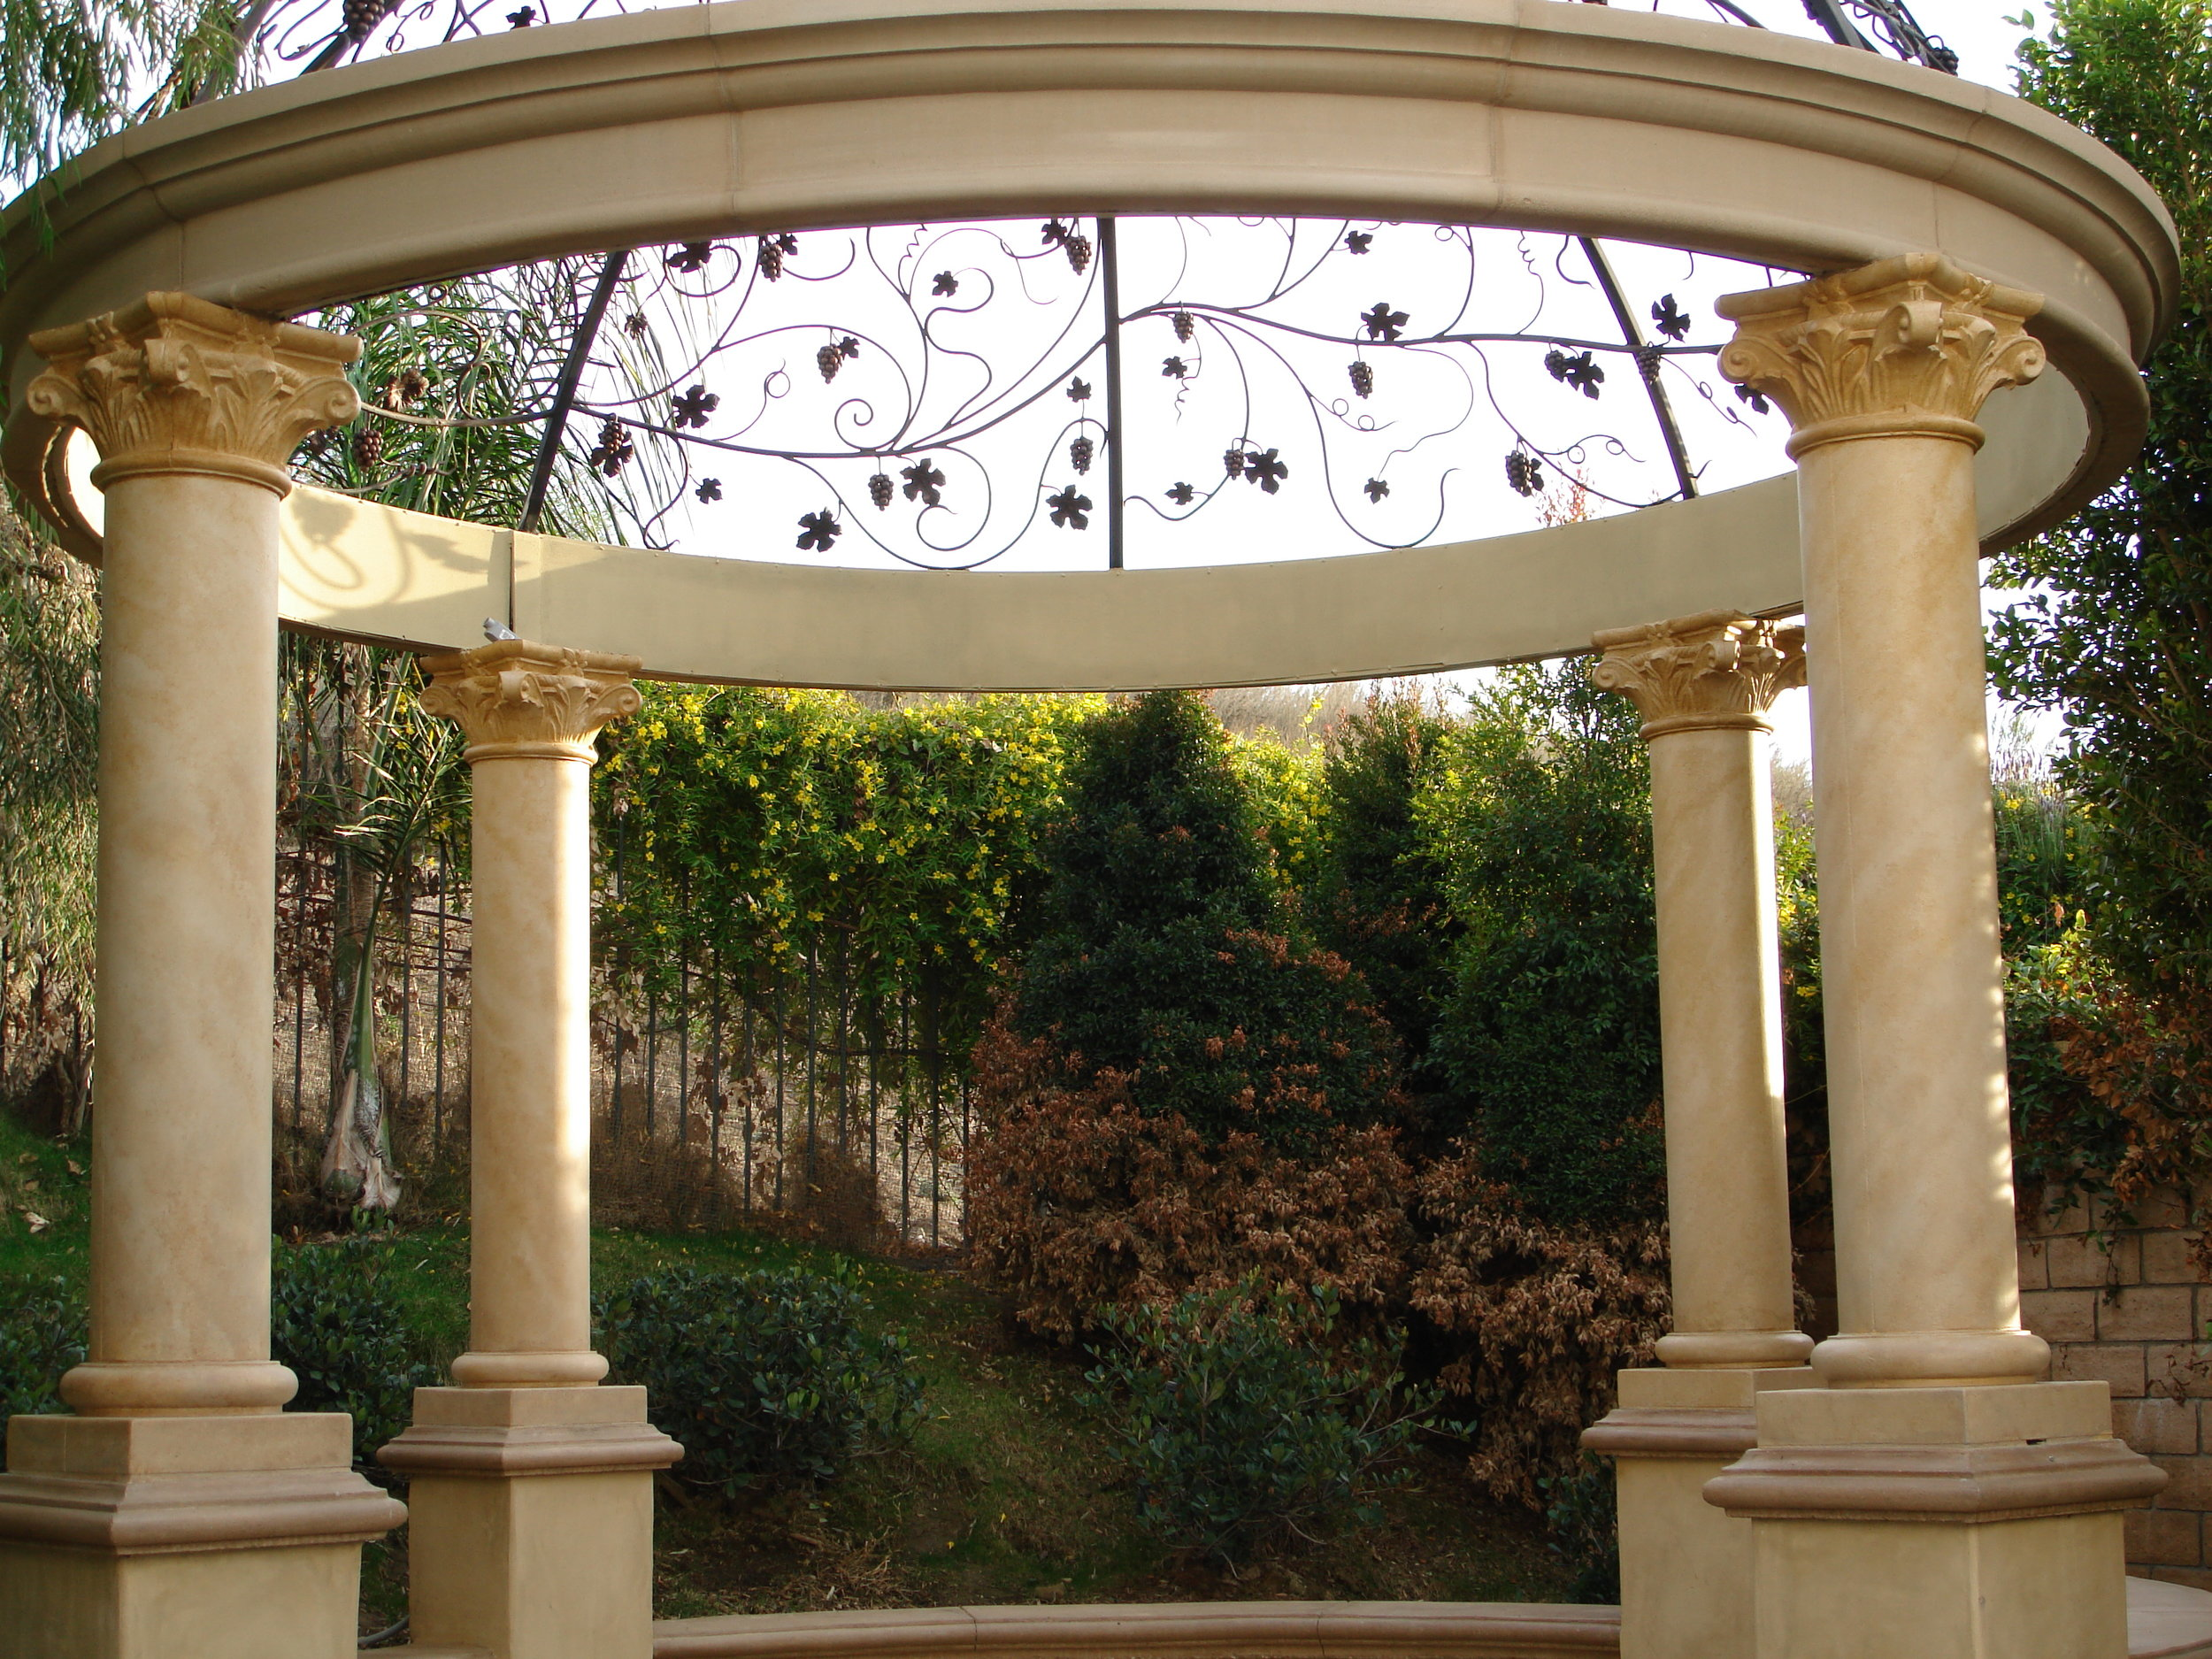 Antiqued_stone_gazebo_detail1.jpg